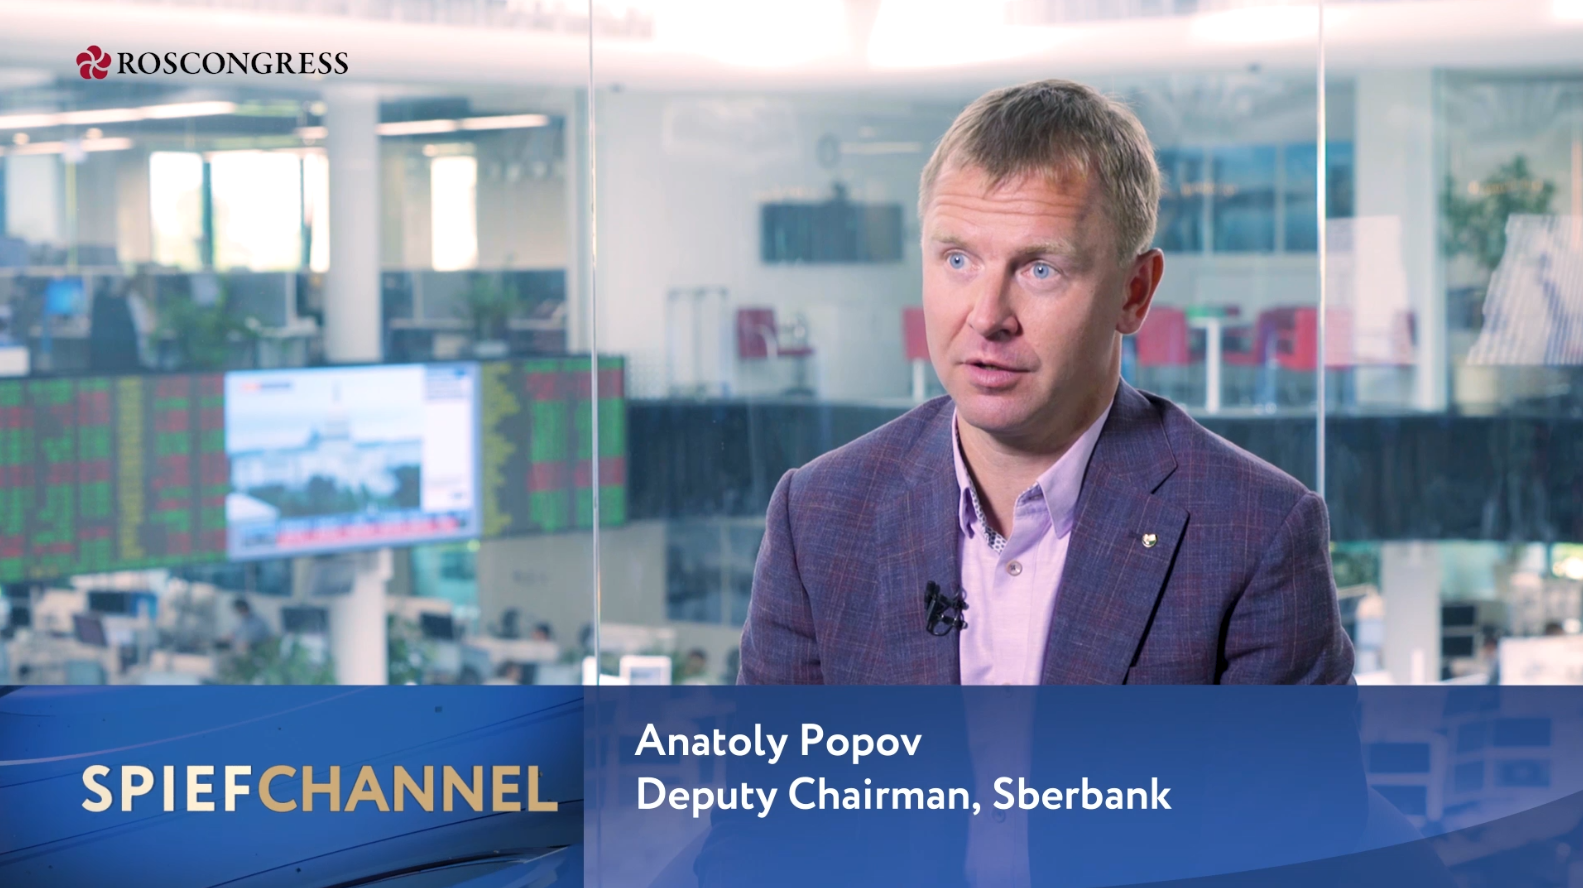 Anatoly Popov, Deputy Chairman of the Executive Board, Sberbank